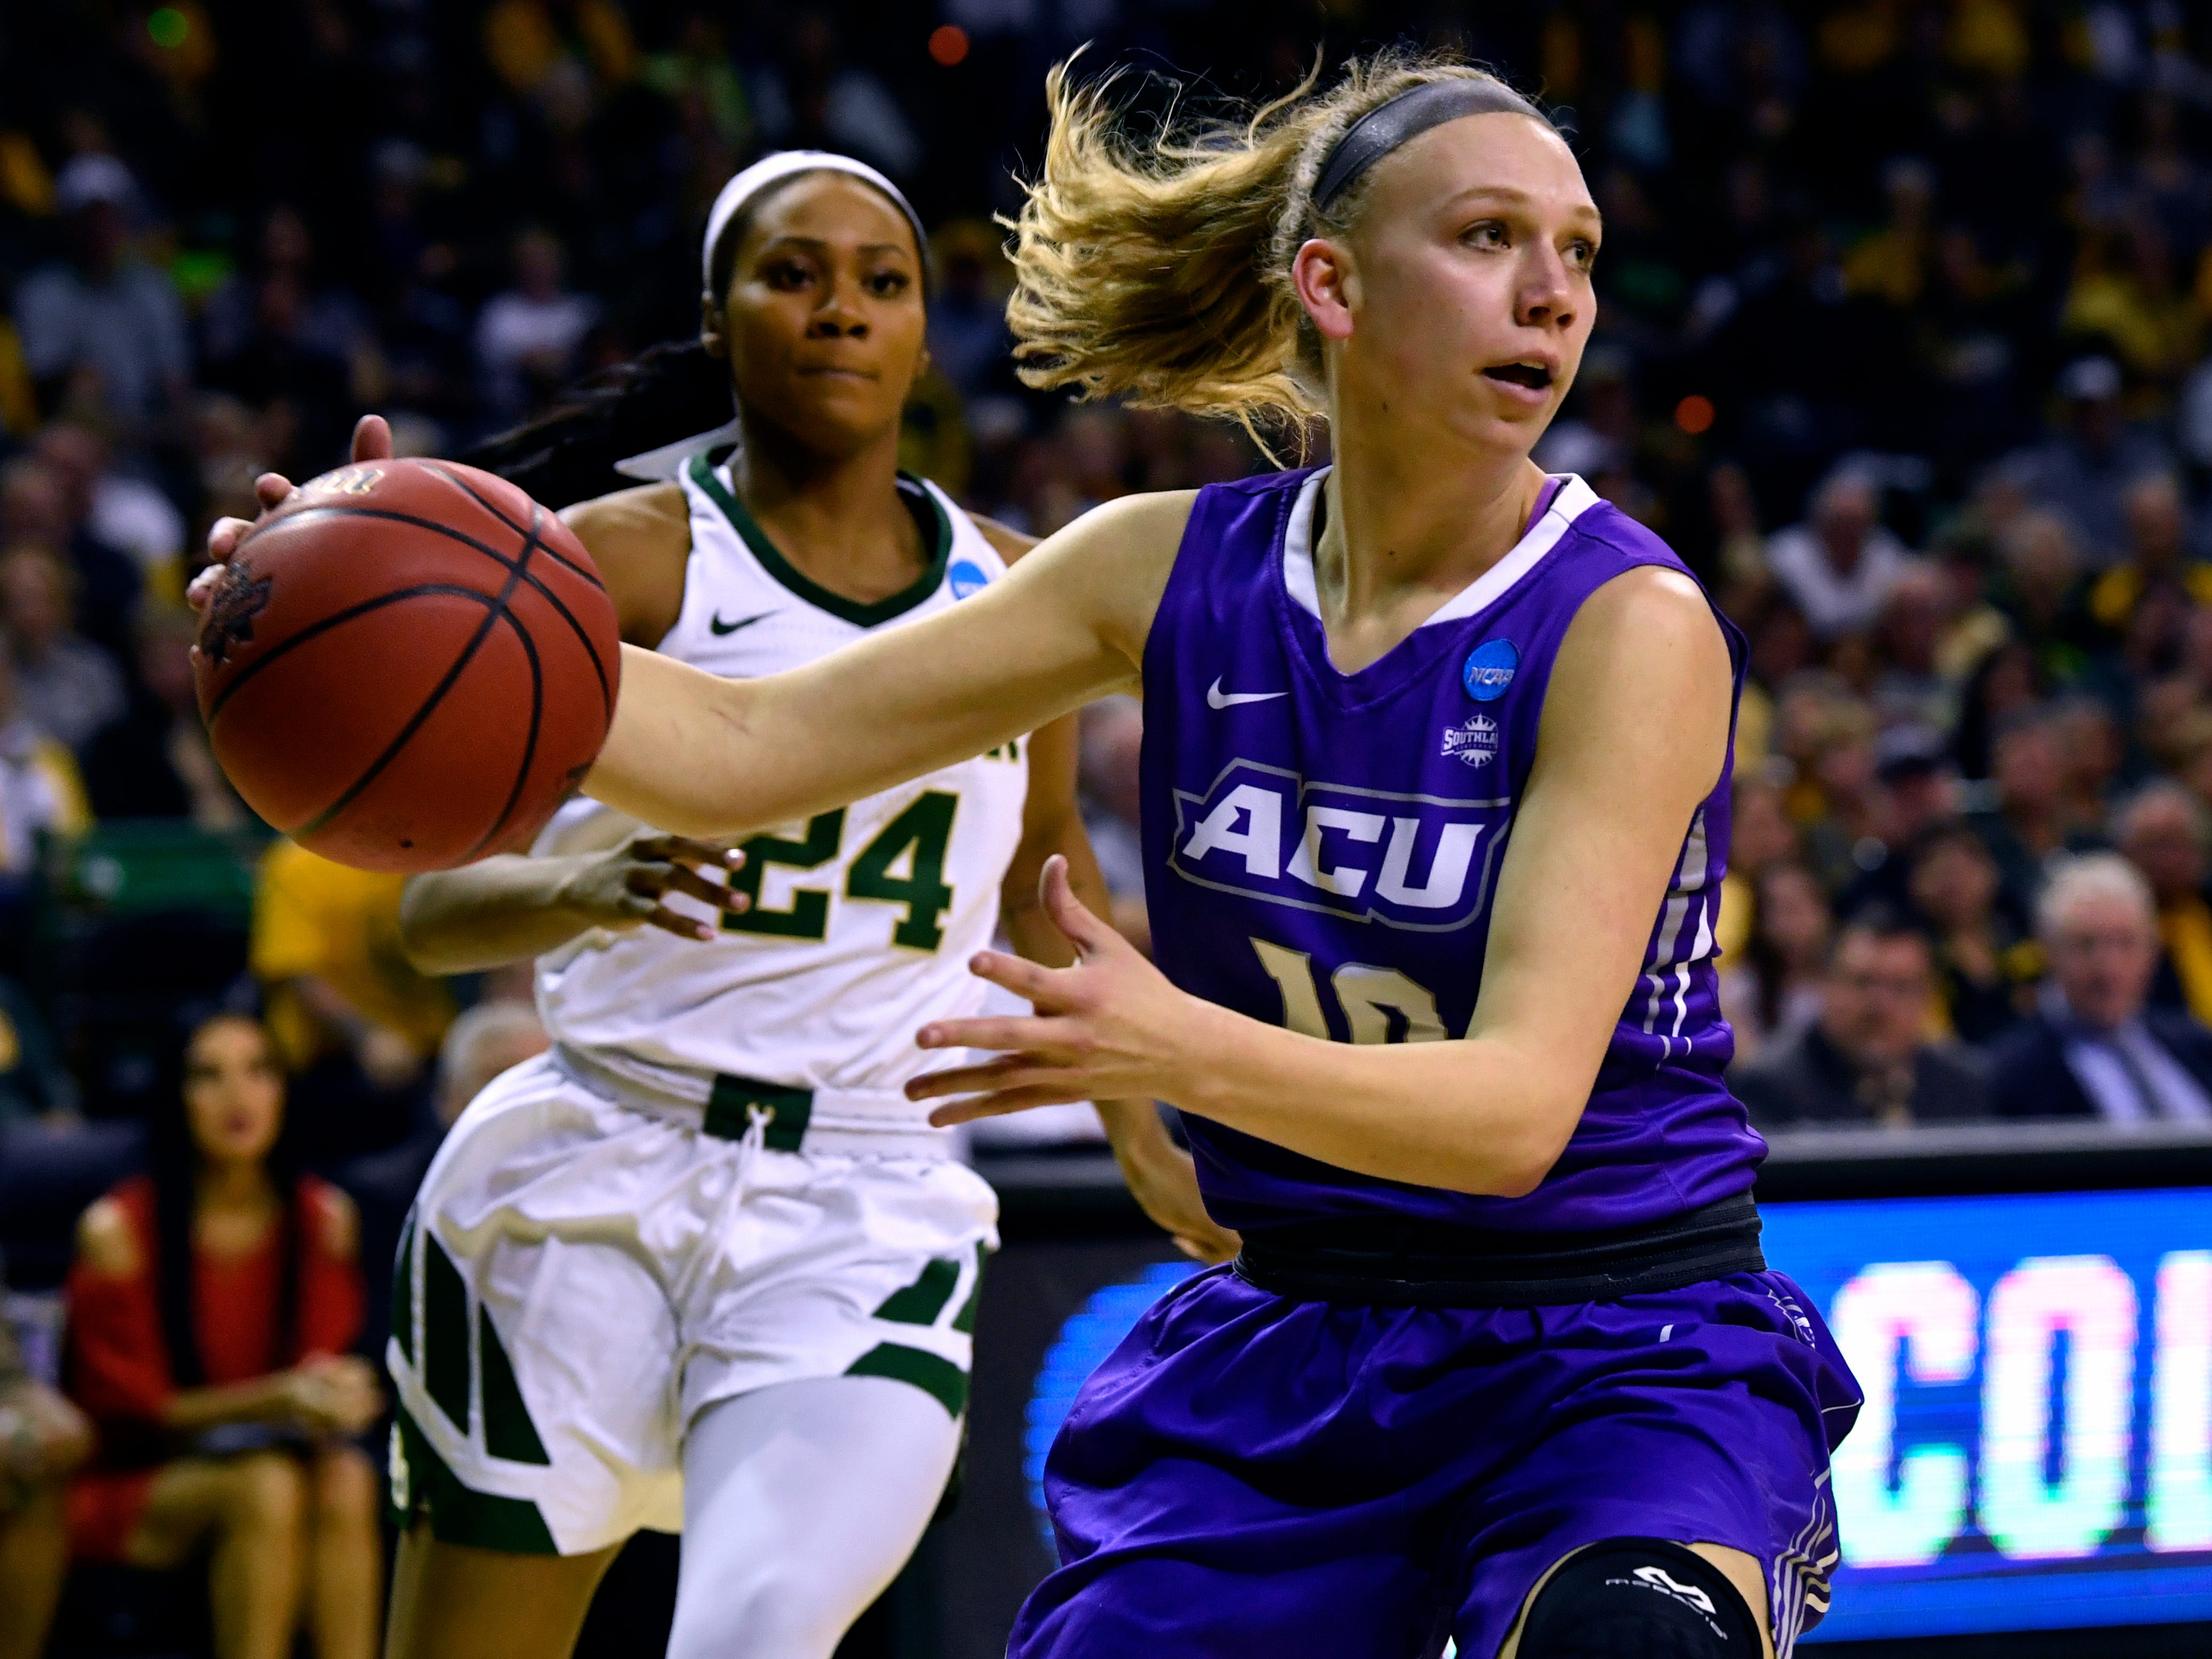 ACU's Breanna Wright plays below the net during Saturday's NCAA Tournament women's round 1 basketball game March 23, 2019. Baylor defeated Abilene Christian University, 95-38.